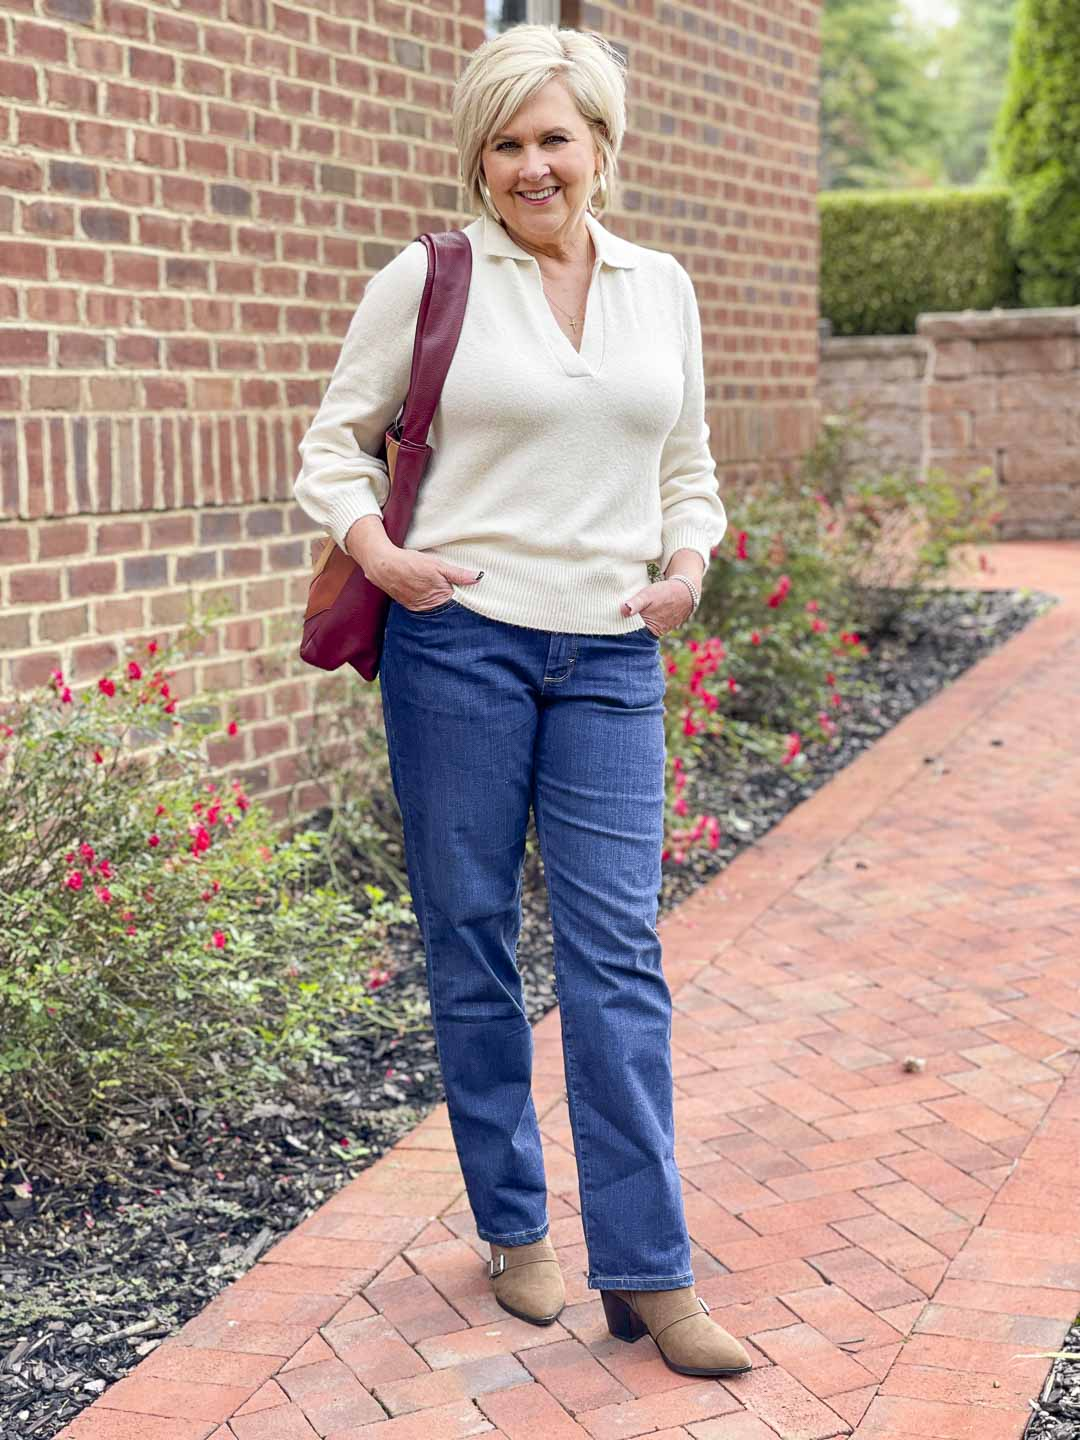 Over 40 Fashion Blogger, Tania Stephens, is showing her recent Walmart haul including this ivory polo sweater, bootcut jeans, and buckled ankle boots